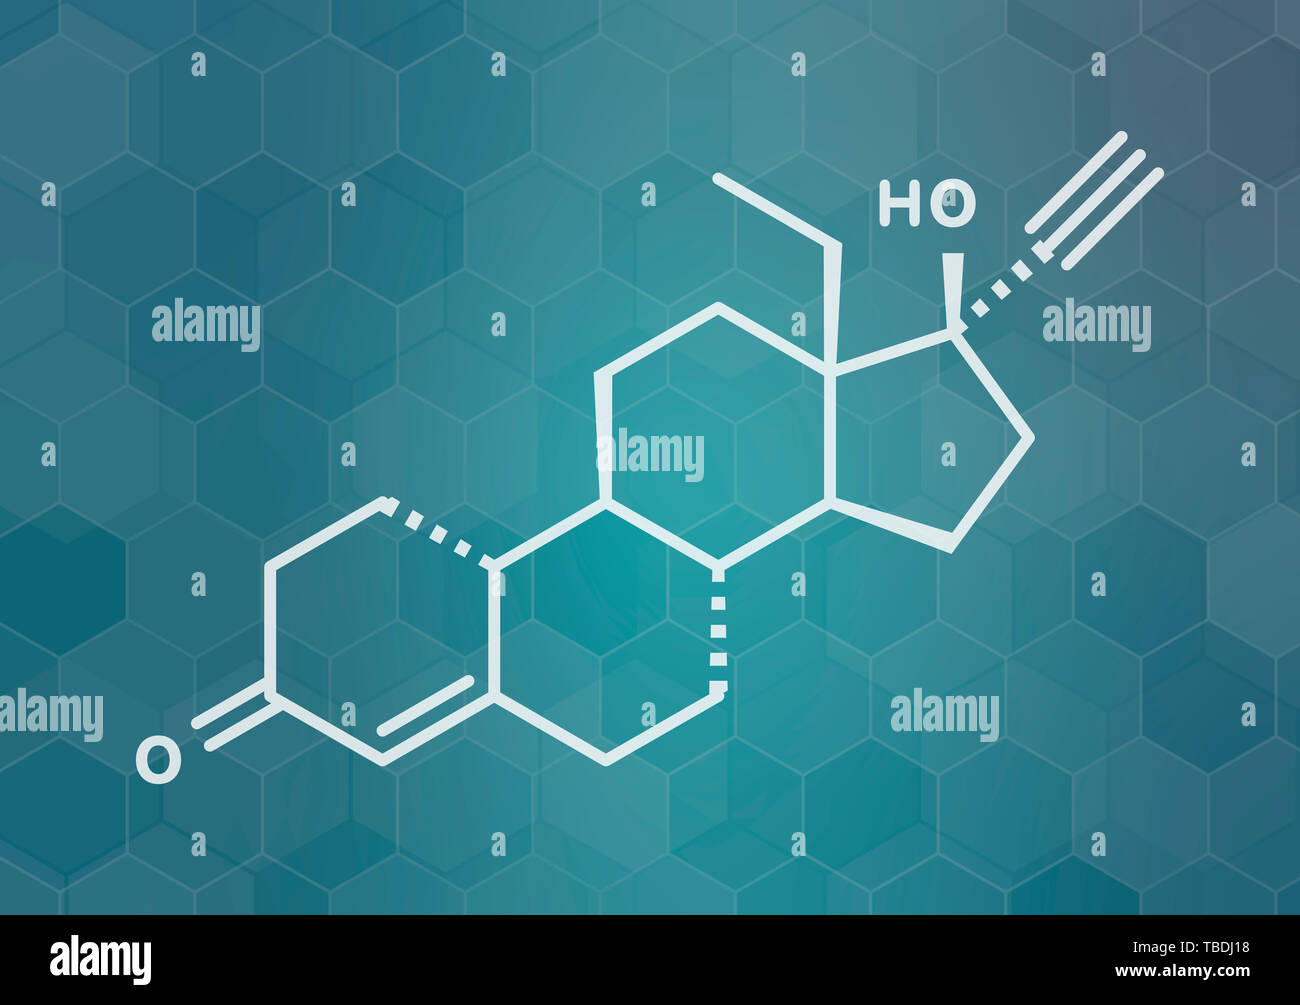 Levonorgestrel contraceptive pill drug molecule. White skeletal formula on dark teal gradient background with hexagonal pattern. - Stock Image